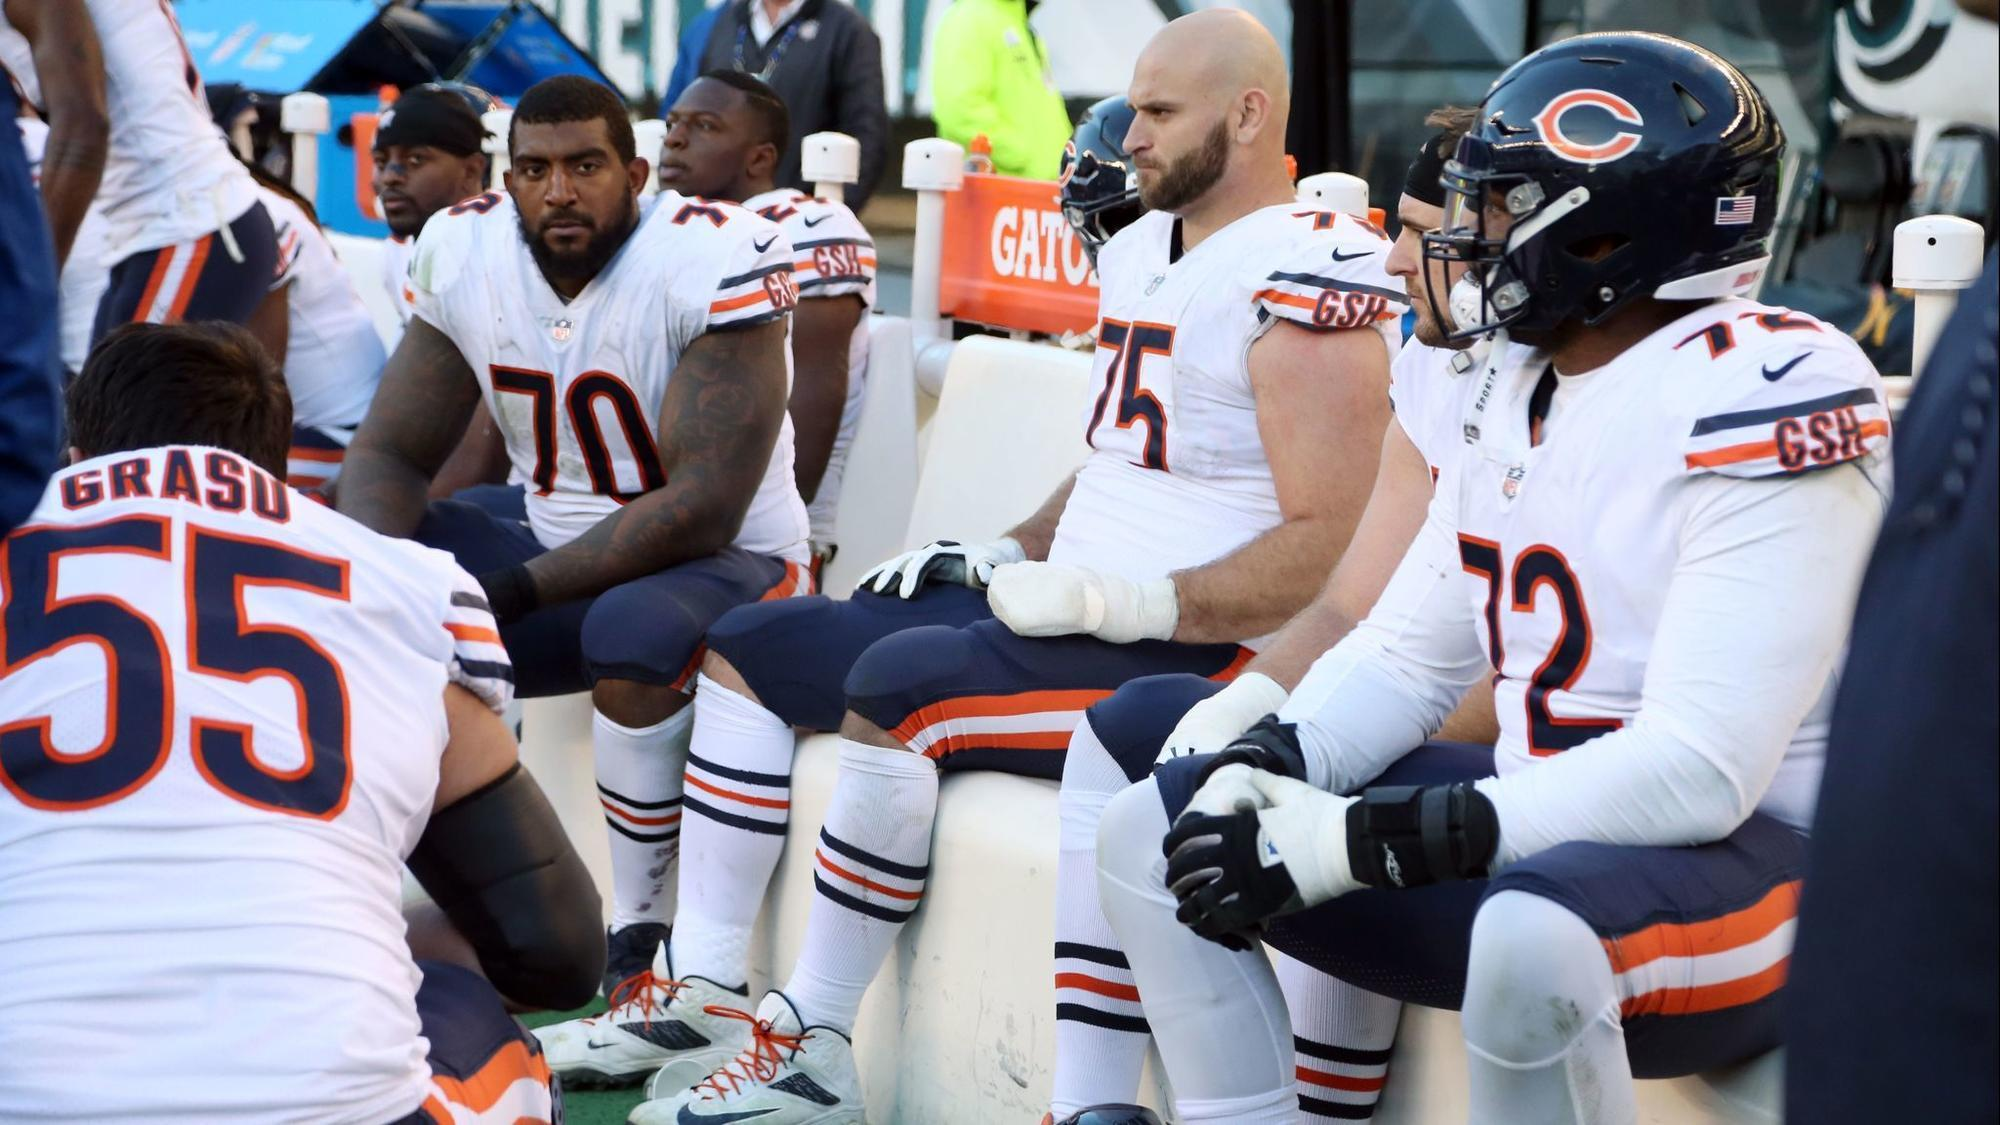 Ct-spt-bears-offensive-line-season-review-20180207